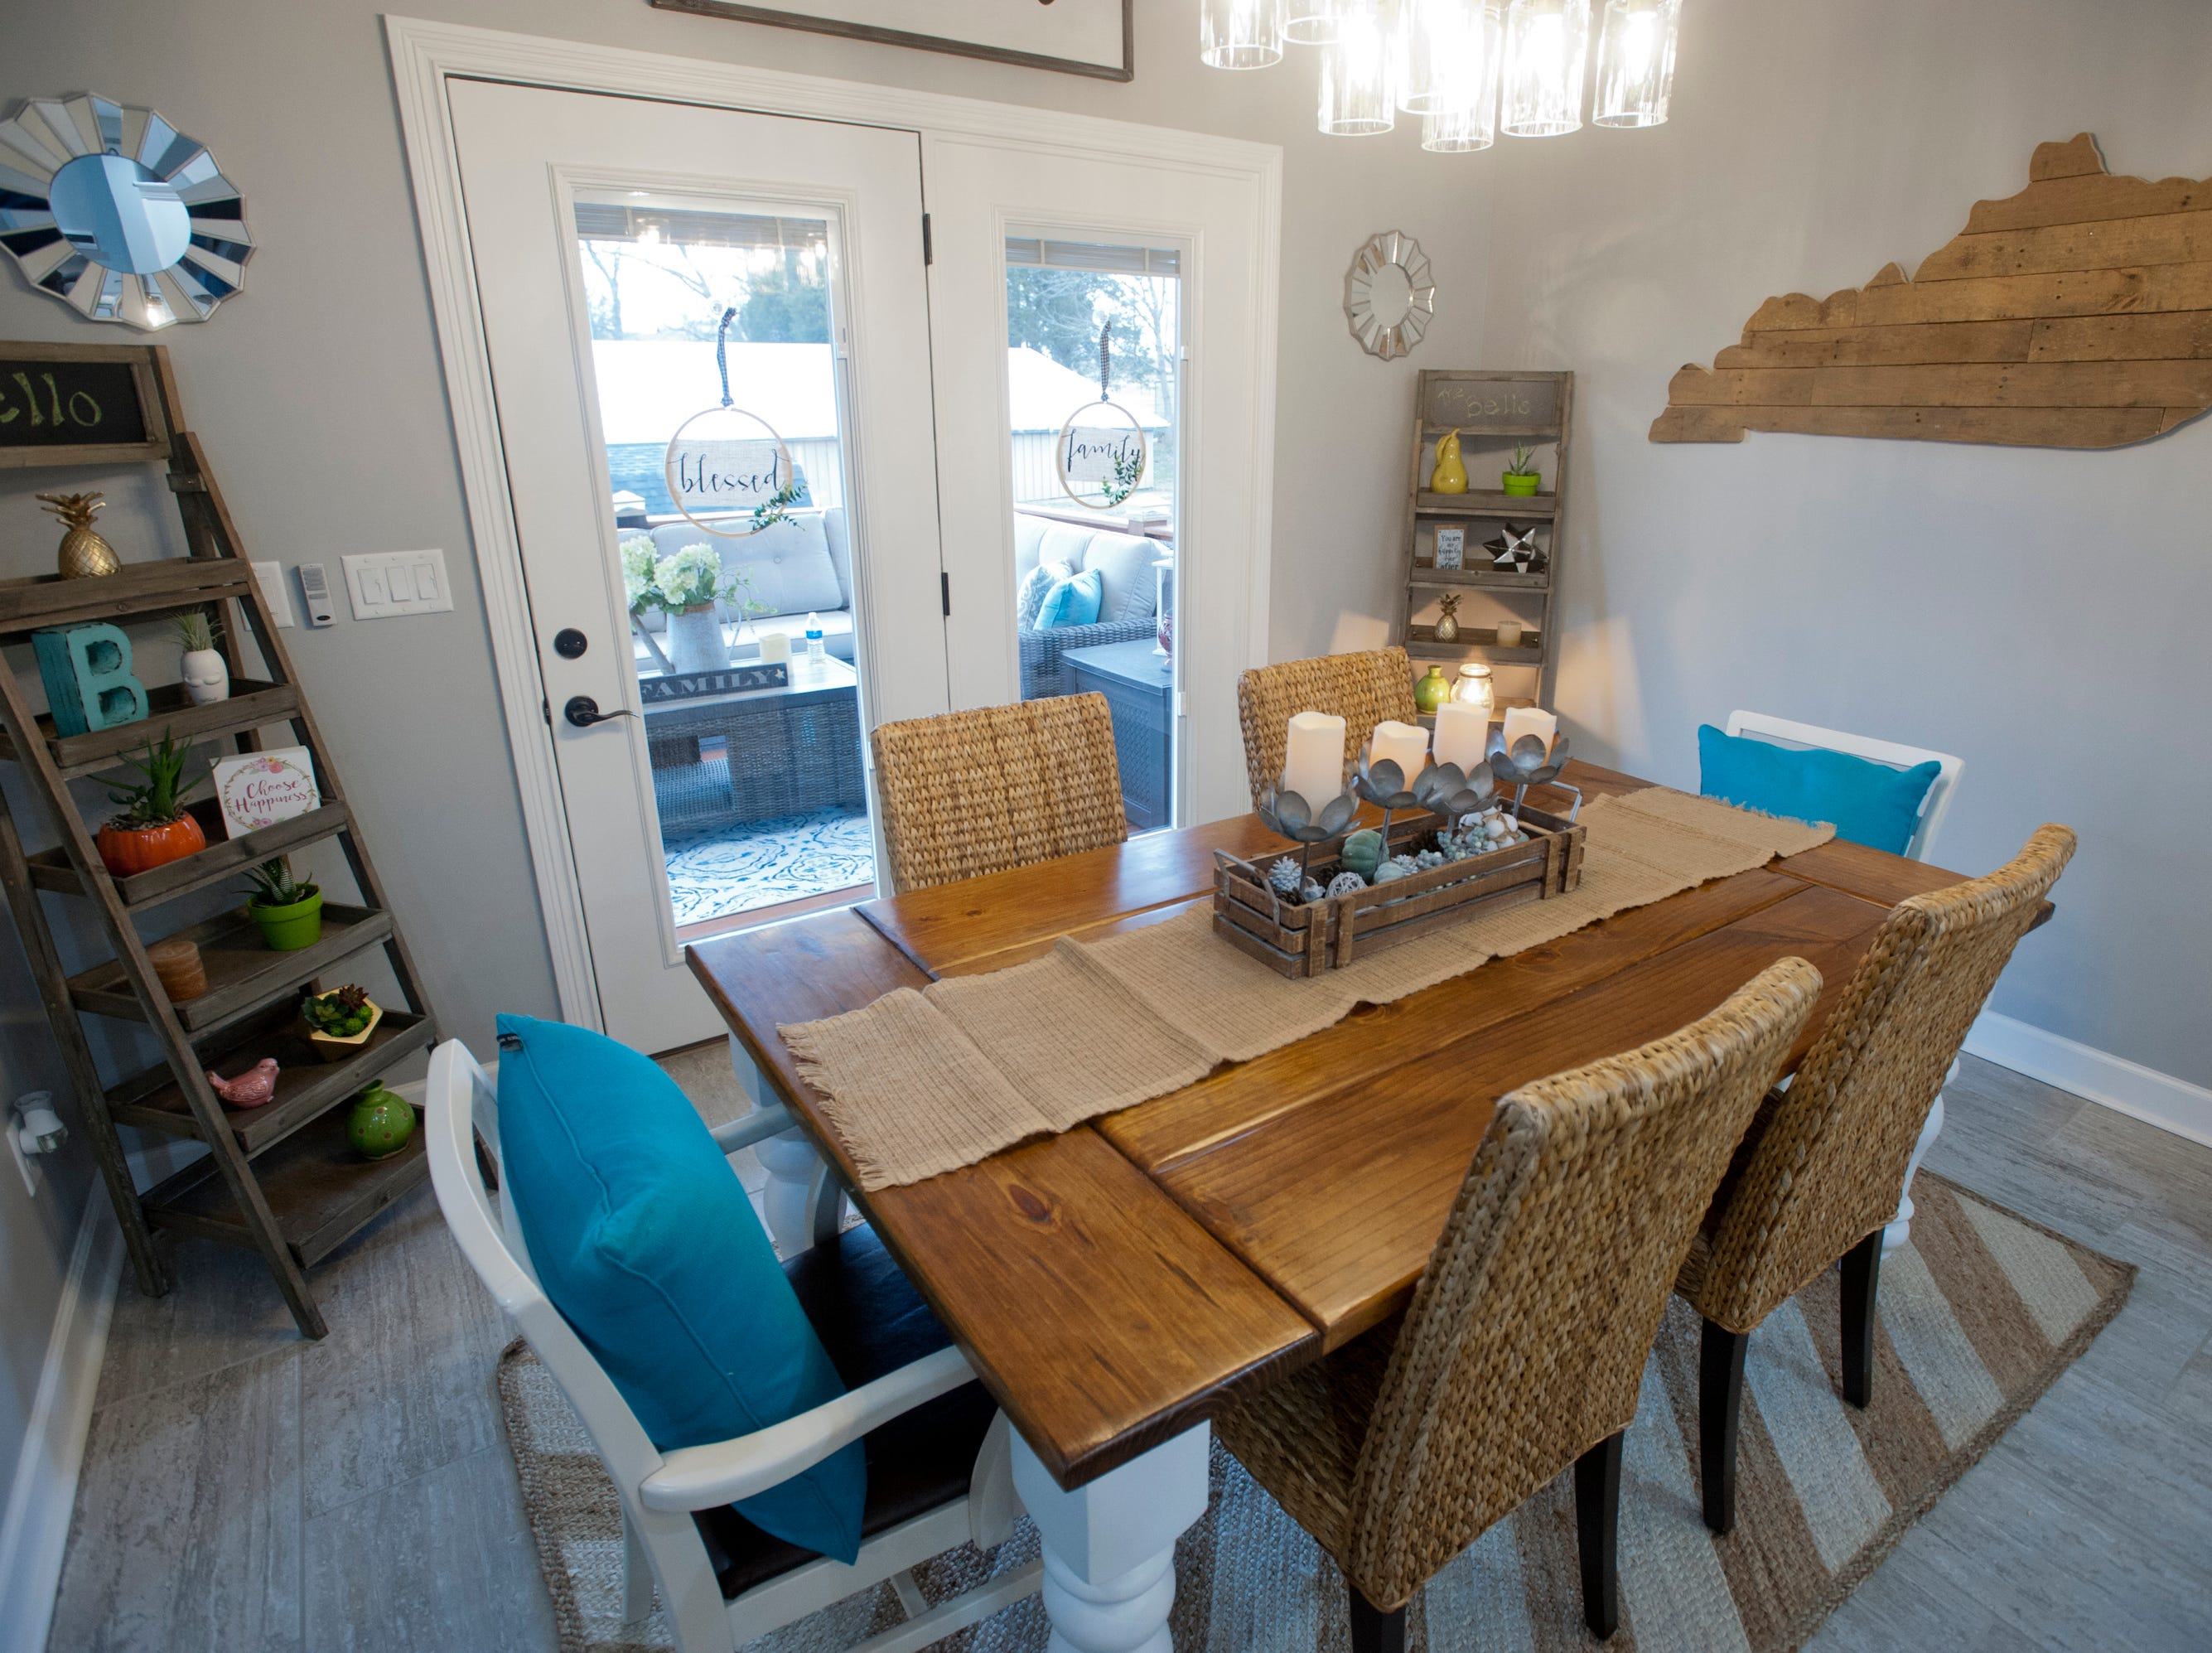 The home's open-concept dining room off the kitchen. The table was custom built by Donnie Pfost.